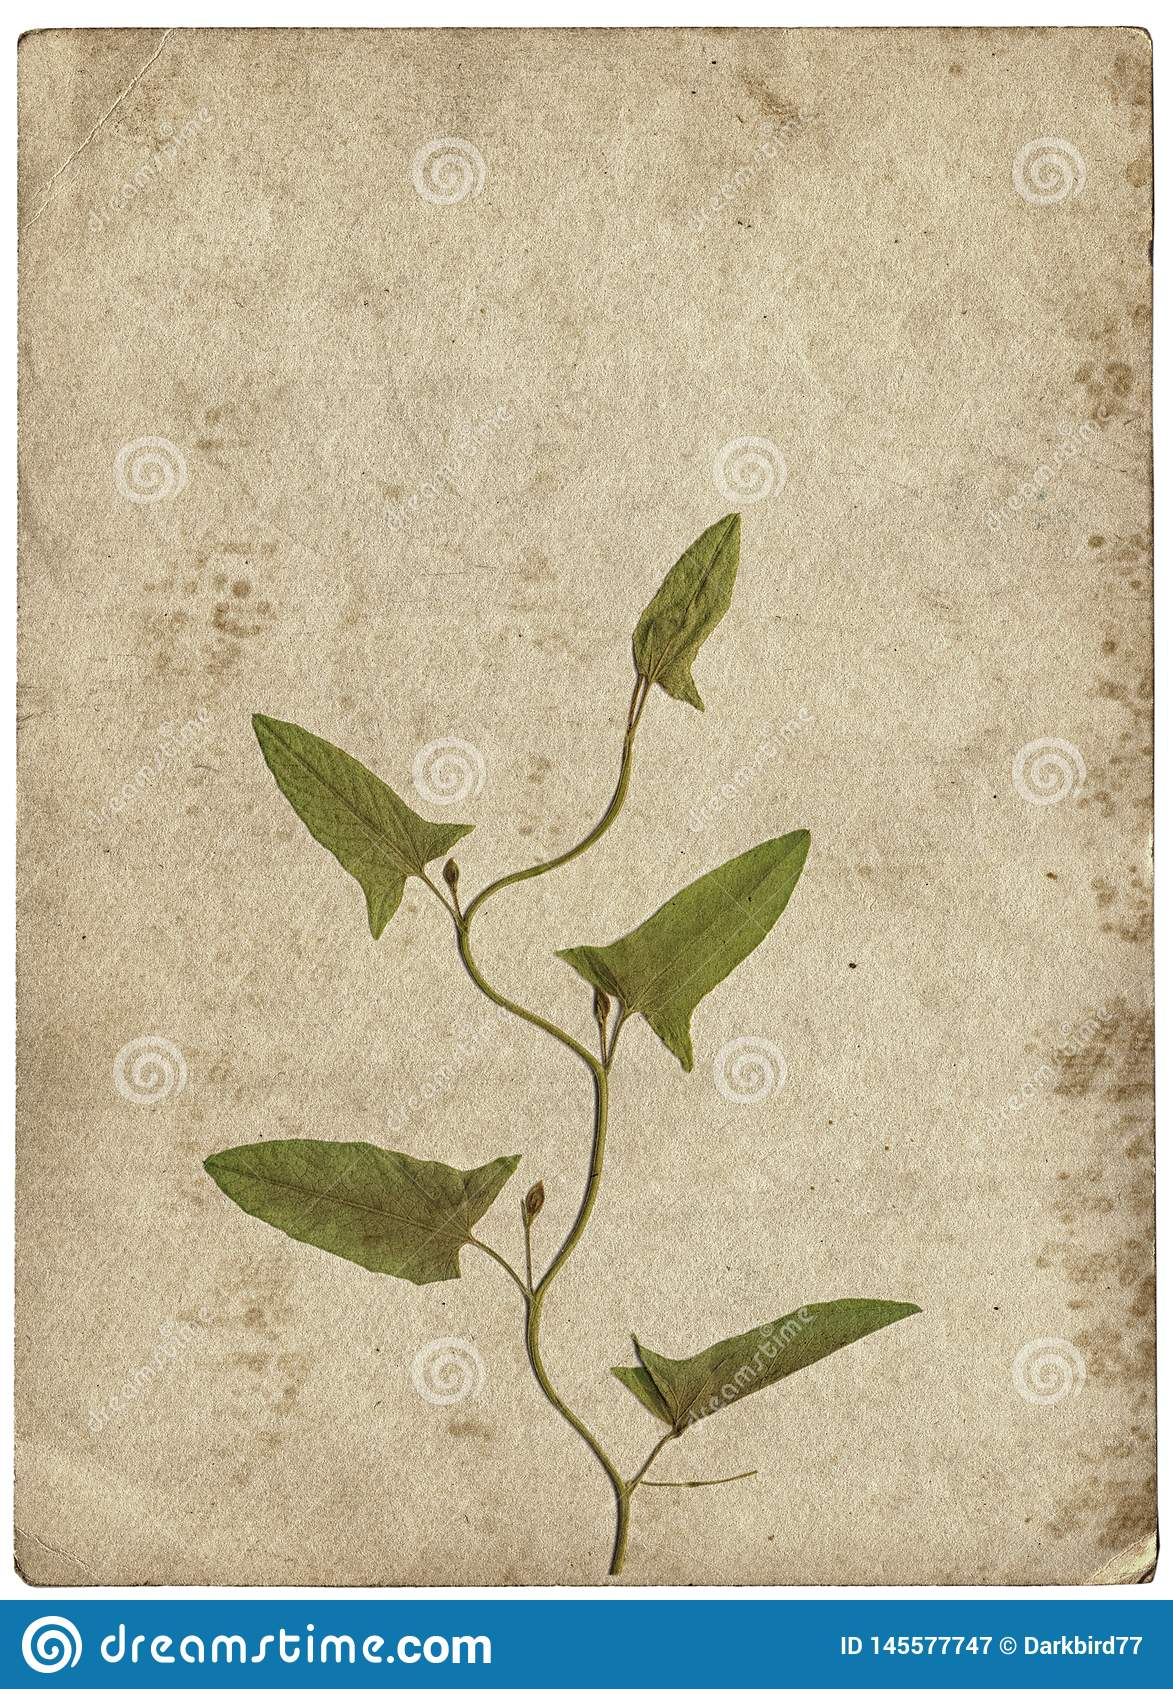 Vintage Background With Dry Plant On Paper Texture Stock Image Image Of Leaf Aged 145577747